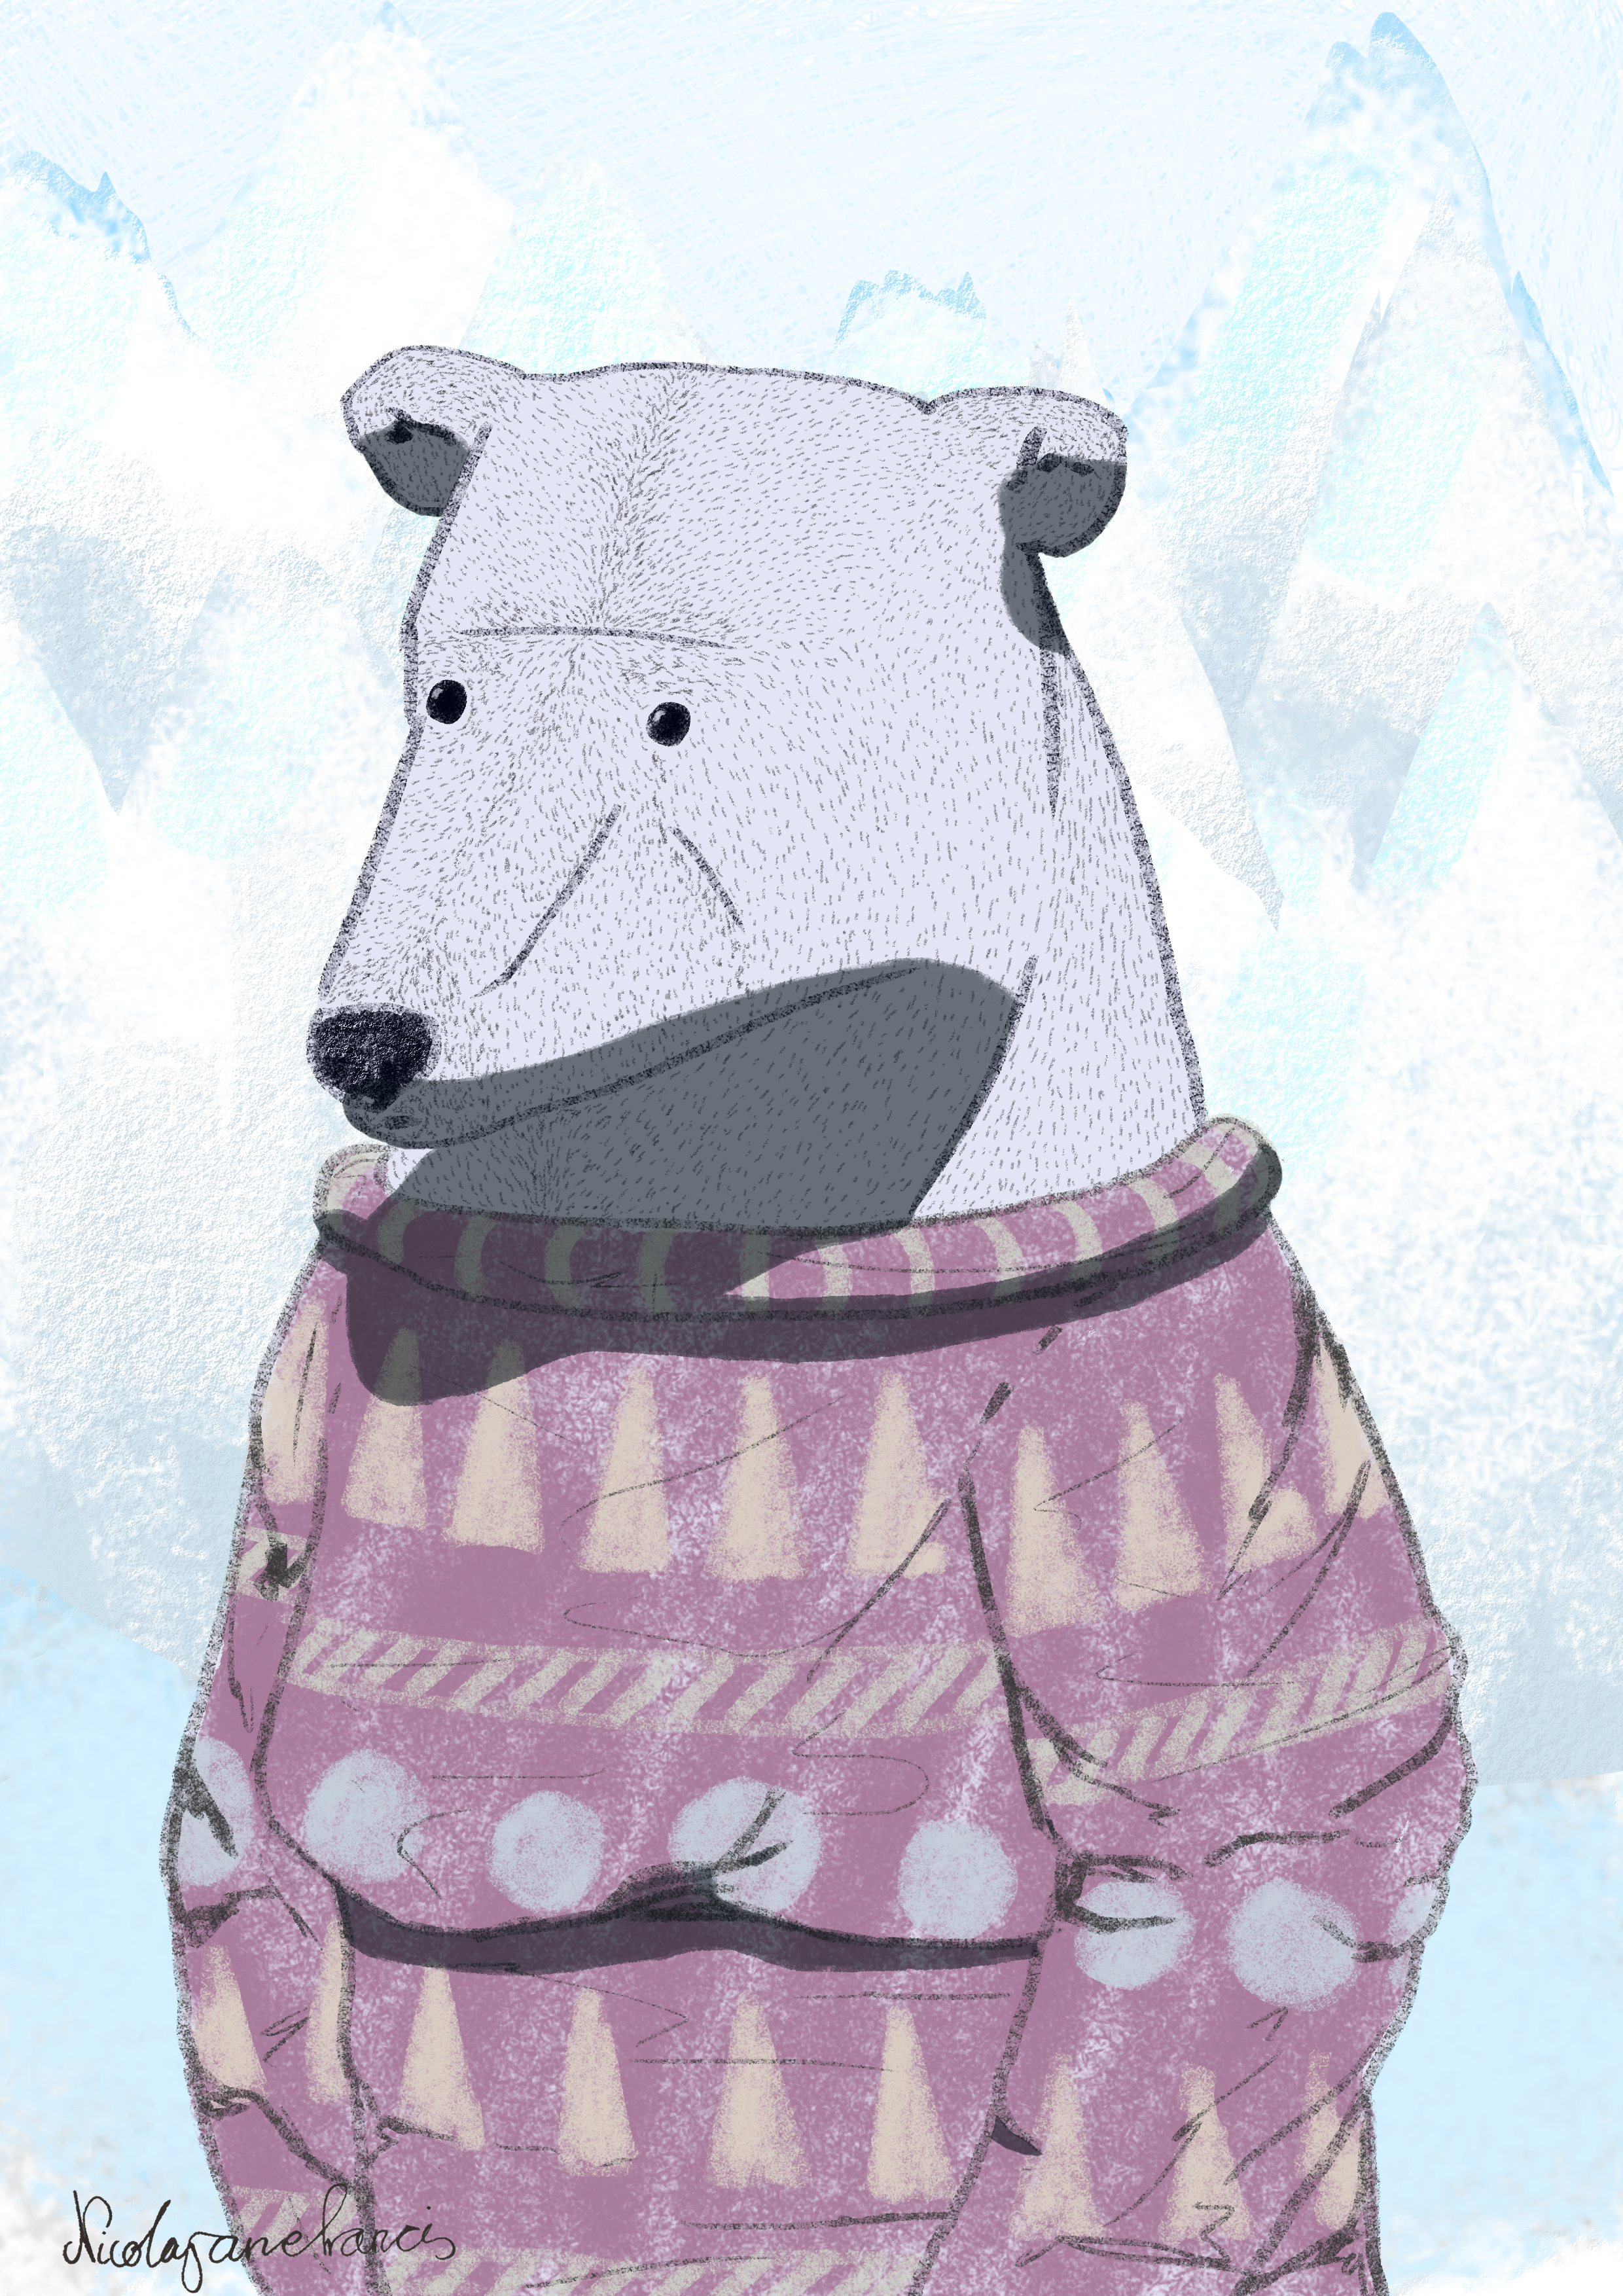 Bear_character_signed.png